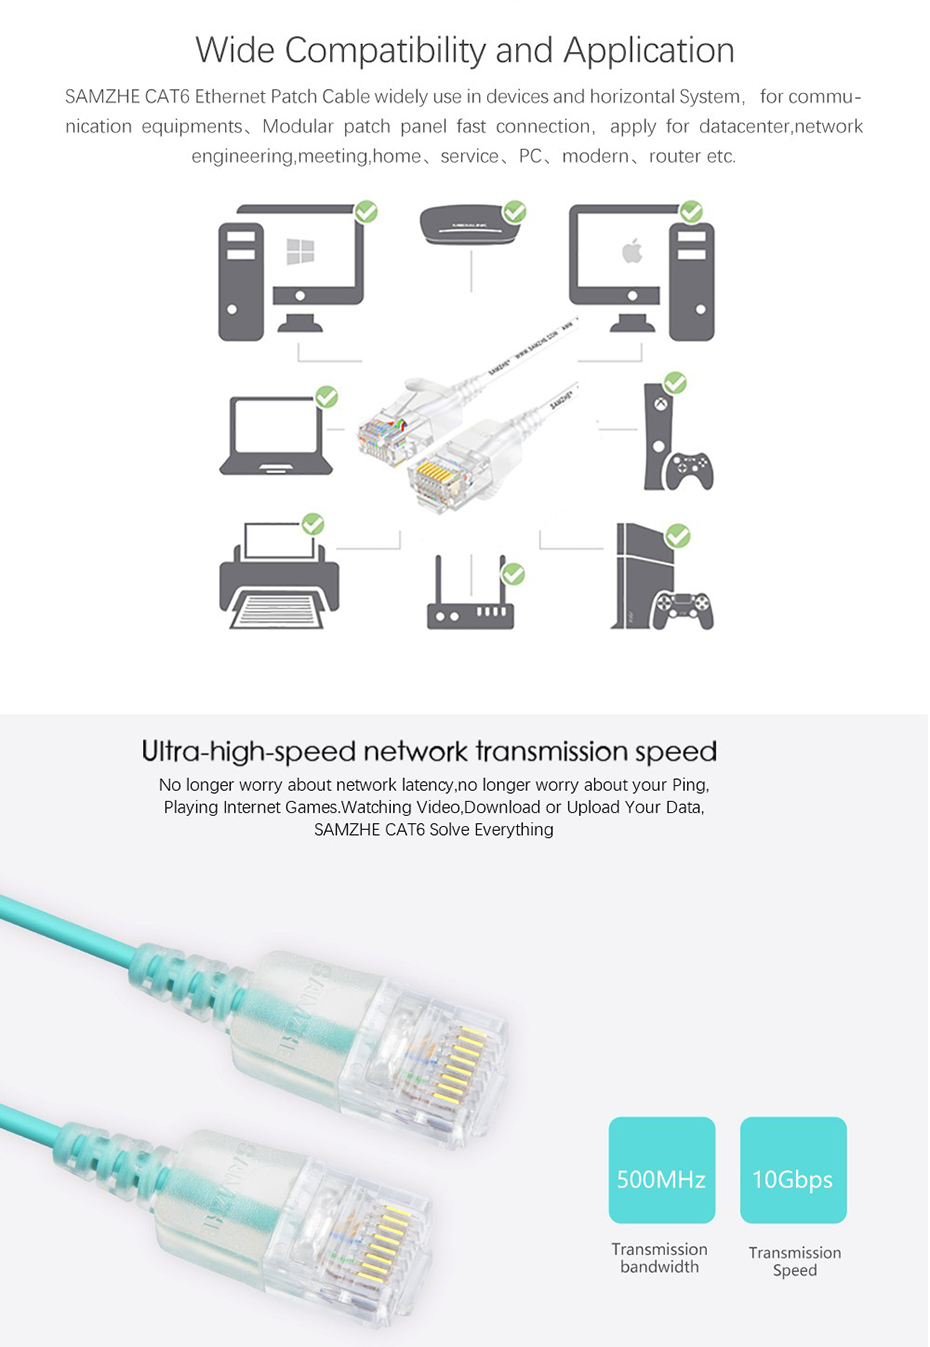 Samzhe Cat6 Ethernet Cable 500mhz 1000mbps Ultrafine Rj45 Network Wiring For Your Home 20170619 101327 002 003 004 006 007 008 009